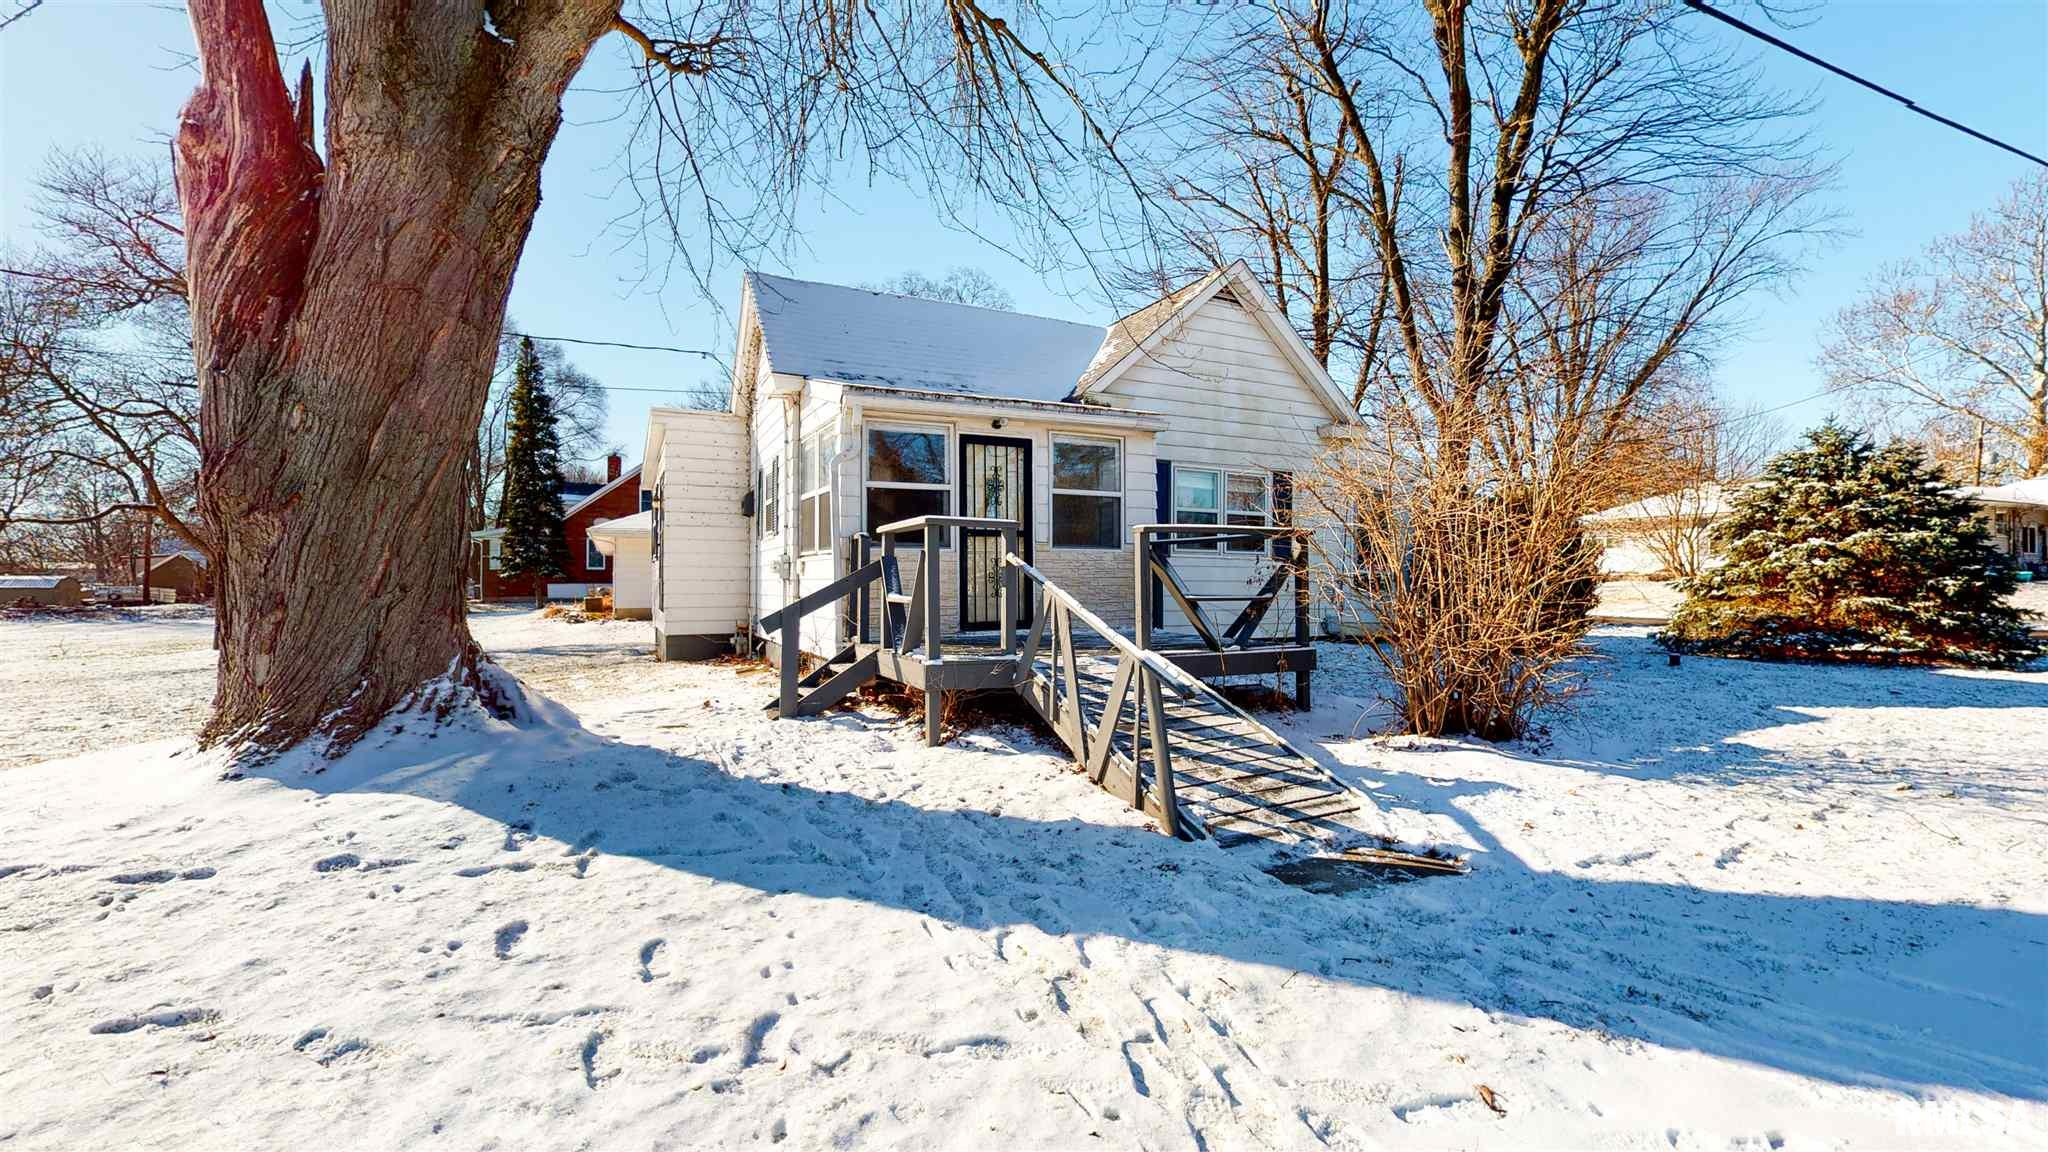 10520 MOSS Property Photo - Mossville, IL real estate listing